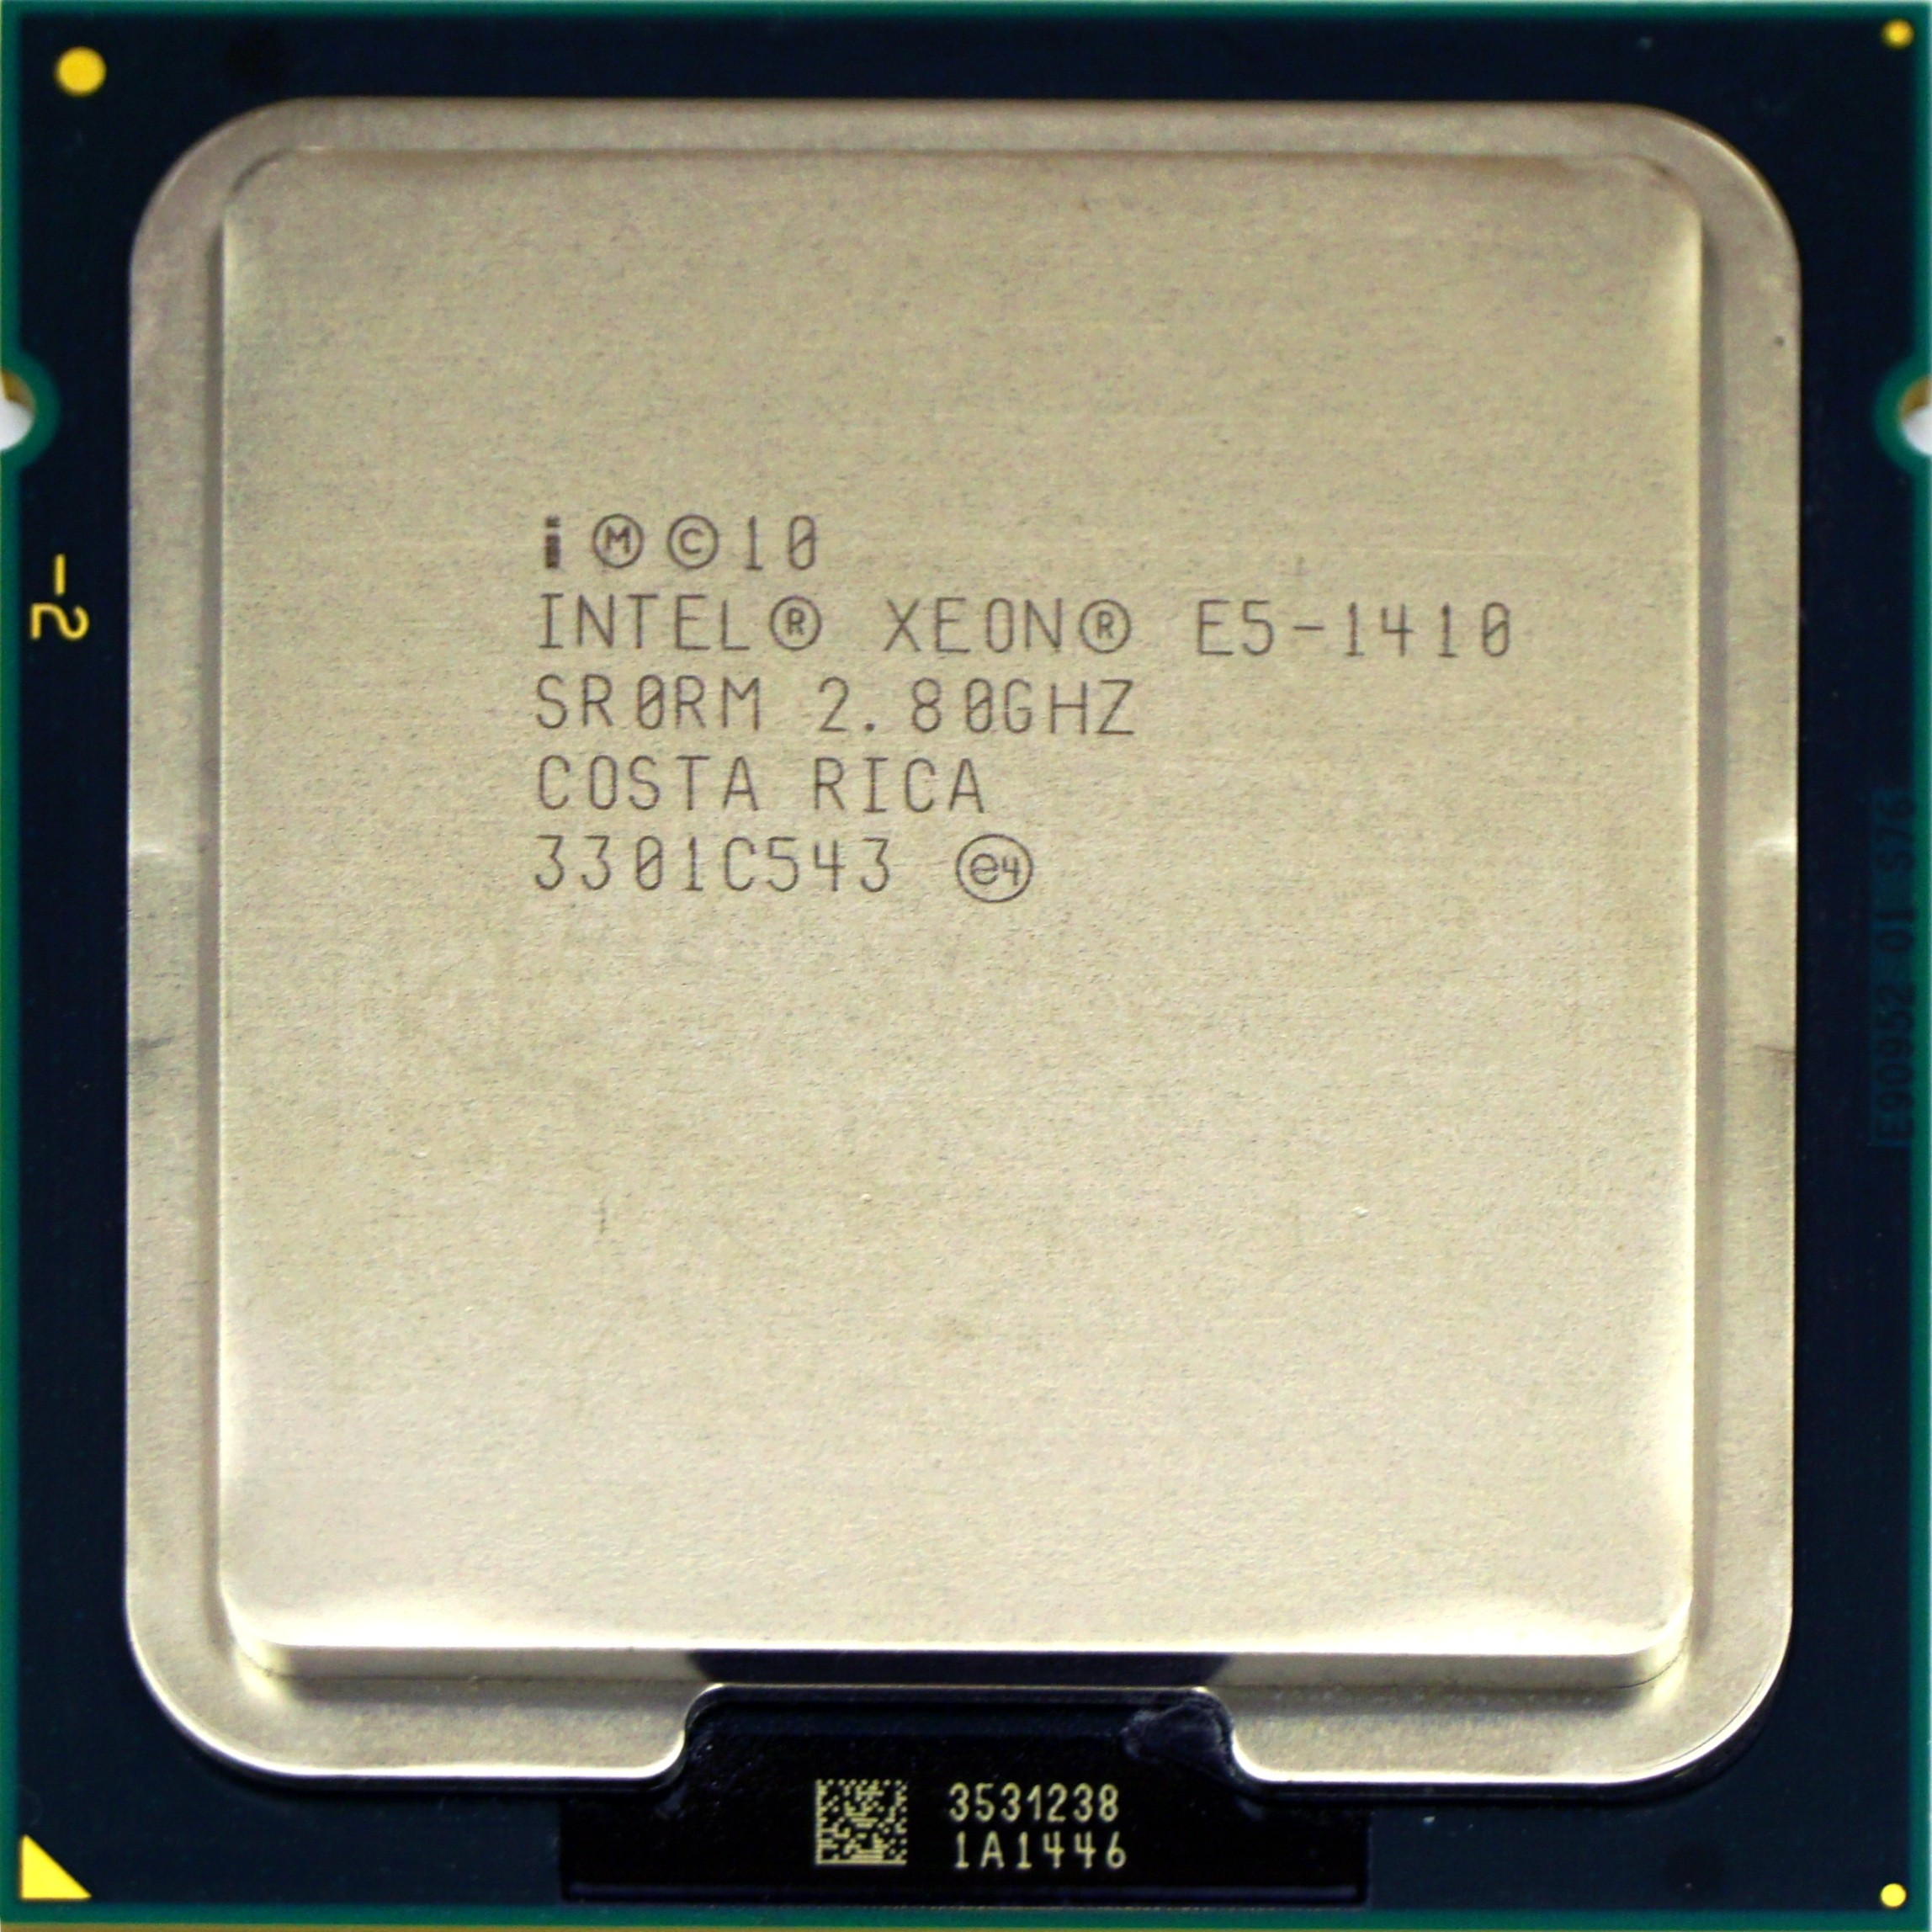 Intel Xeon E5-1410 V1 (SR0RM) 2 80Ghz Quad (4) Core LGA1356 80W CPU